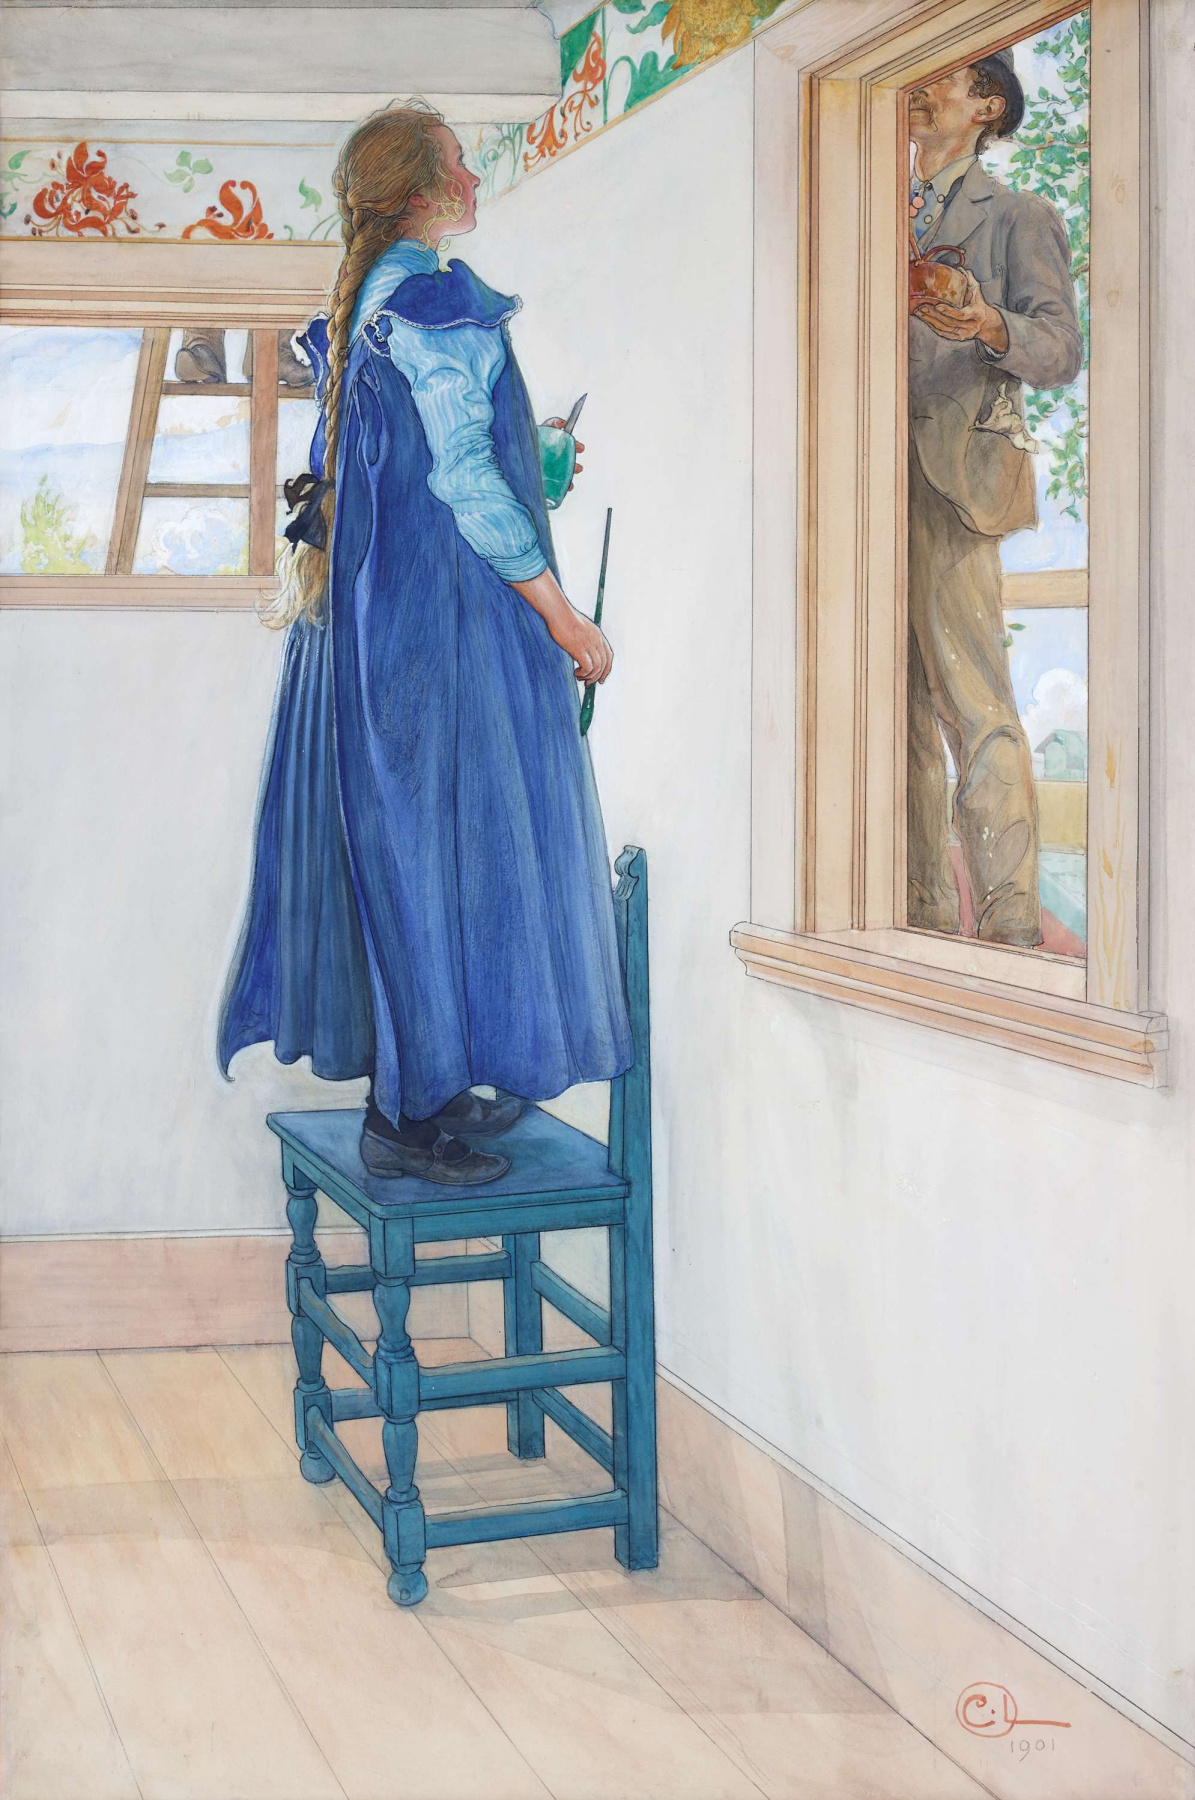 Carl Larsson. Suzanne and another